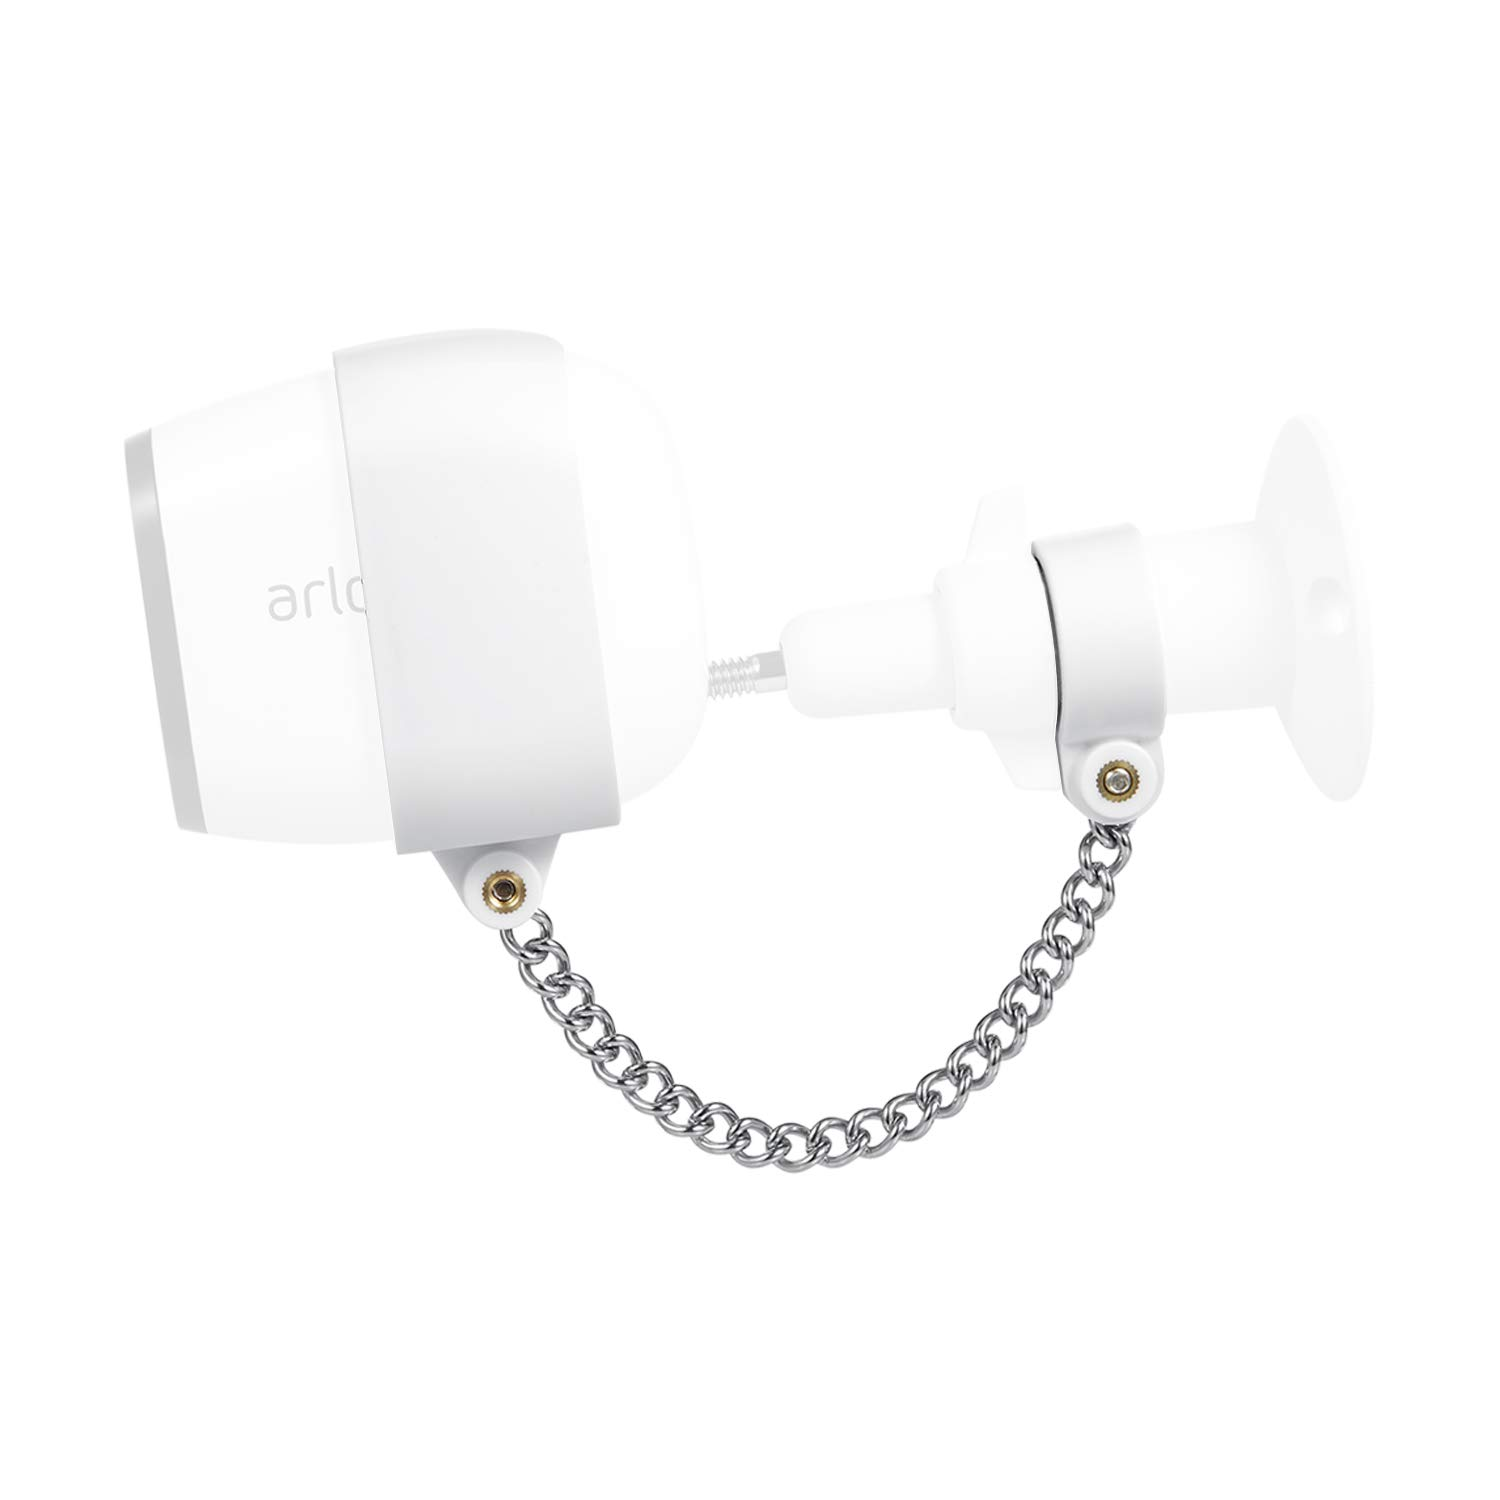 Wasserstein Anti-Theft Security Chain Compatible with Arlo Pro and Arlo Pro  2 - Extra Security for Your Arlo Camera (1-Pack, White)